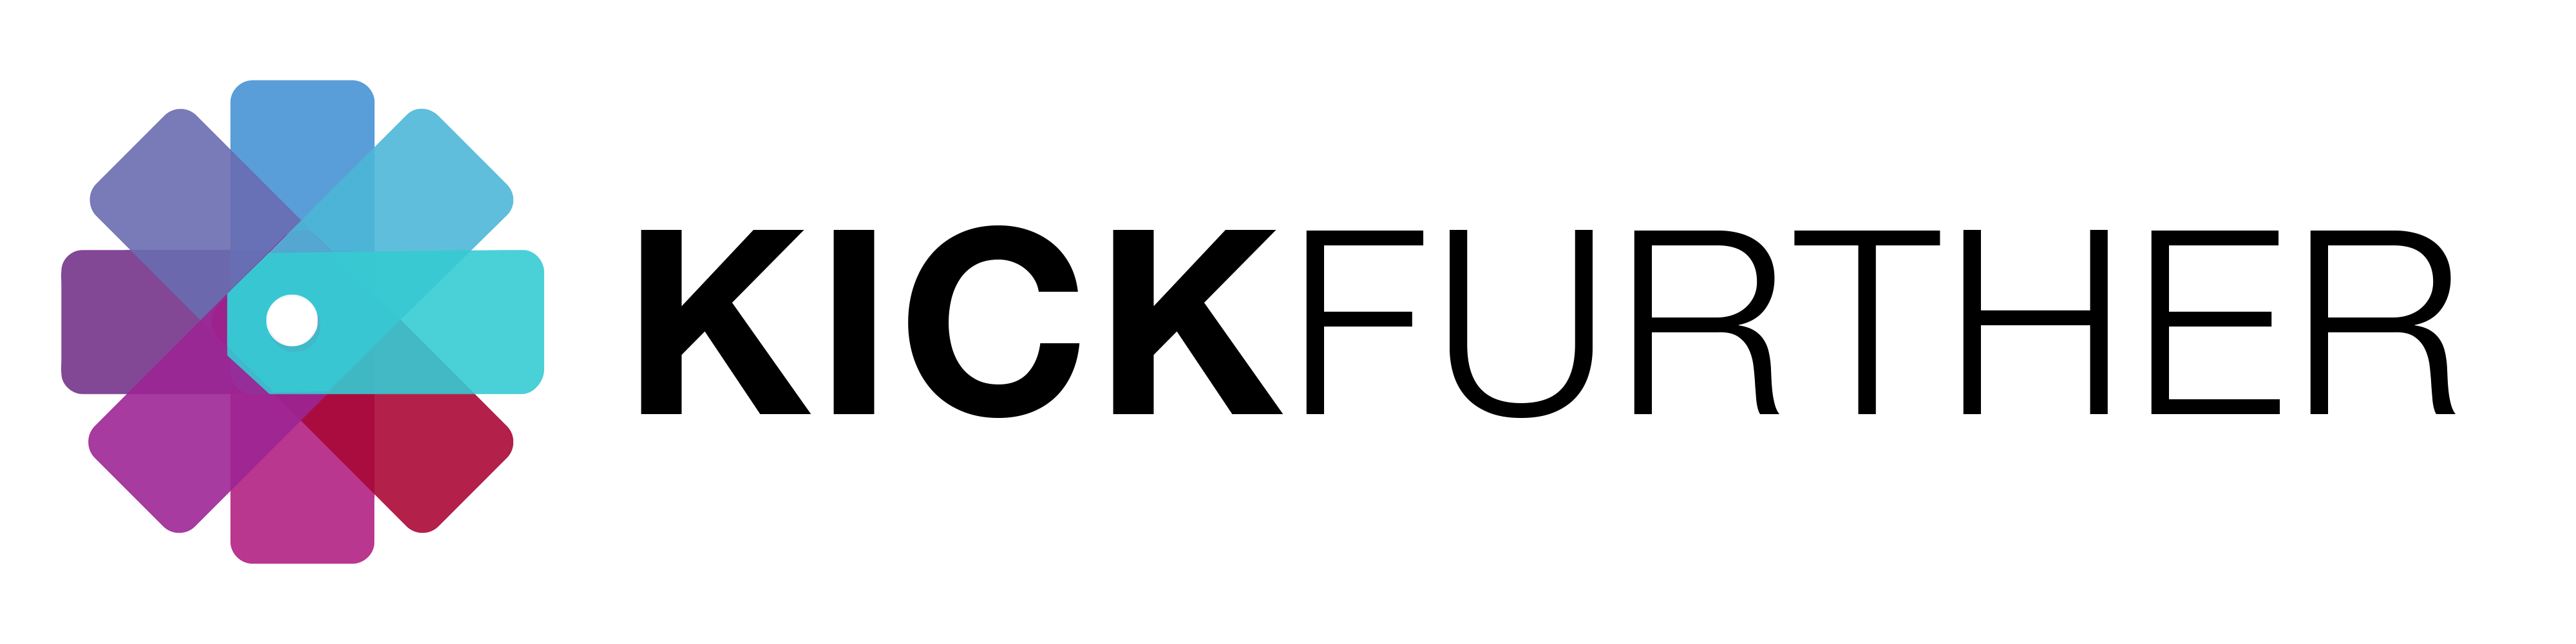 logo_transparent-1.png